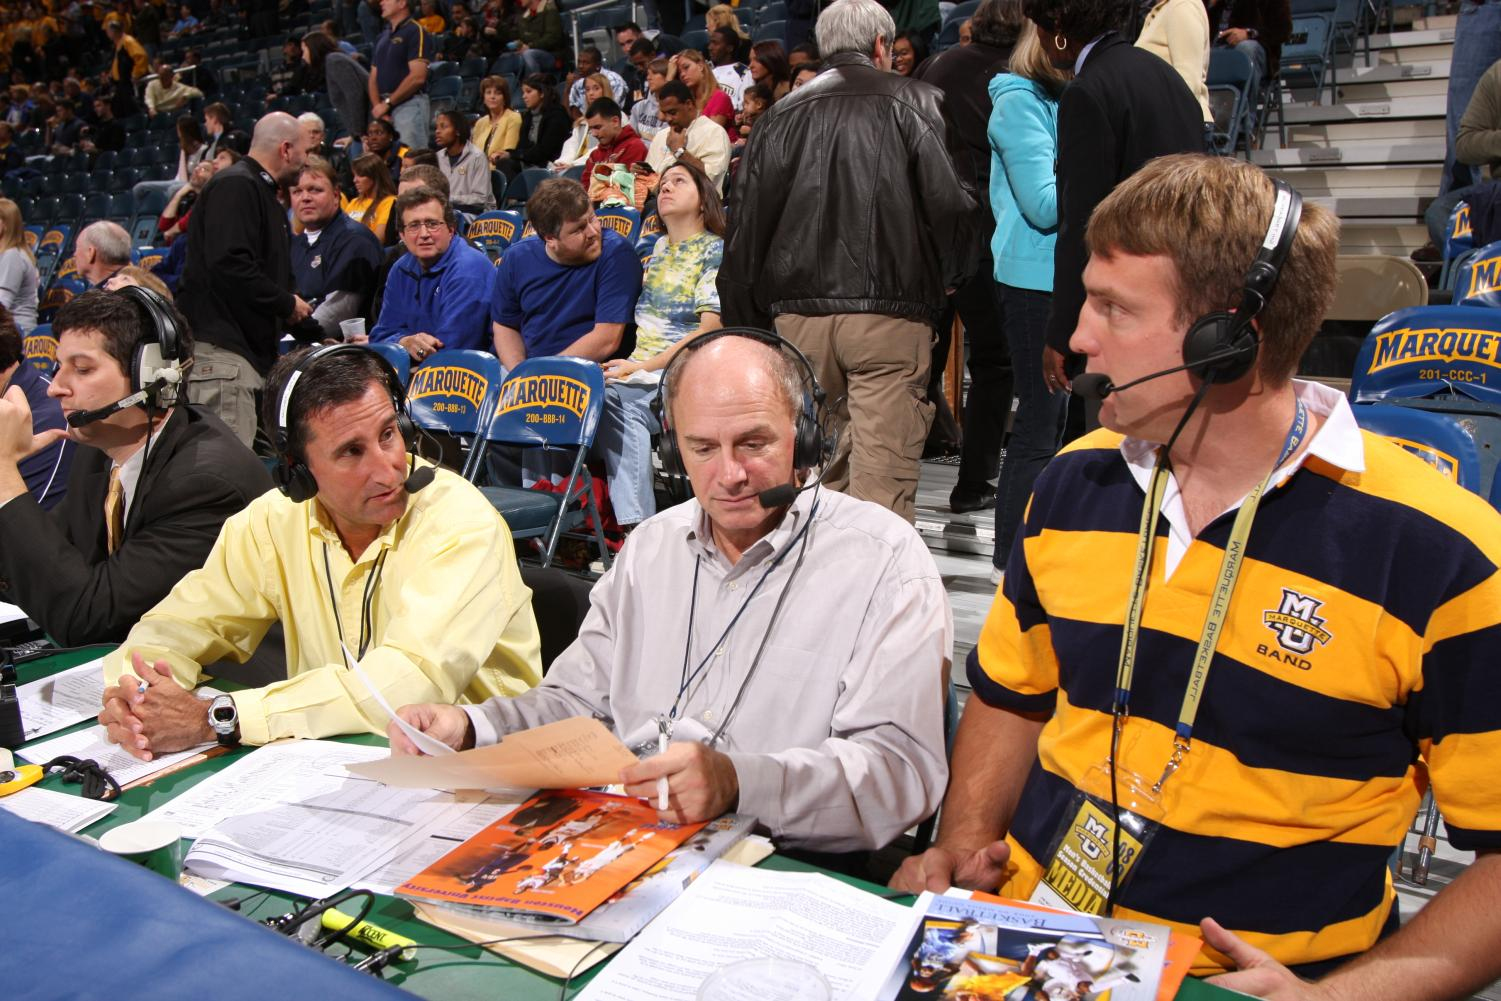 Jim McIlvaine started on the Marquette broadcasting team in 2003 and was the permanent color commentator since 2005. (Photo courtesy of Marquette Athletics)